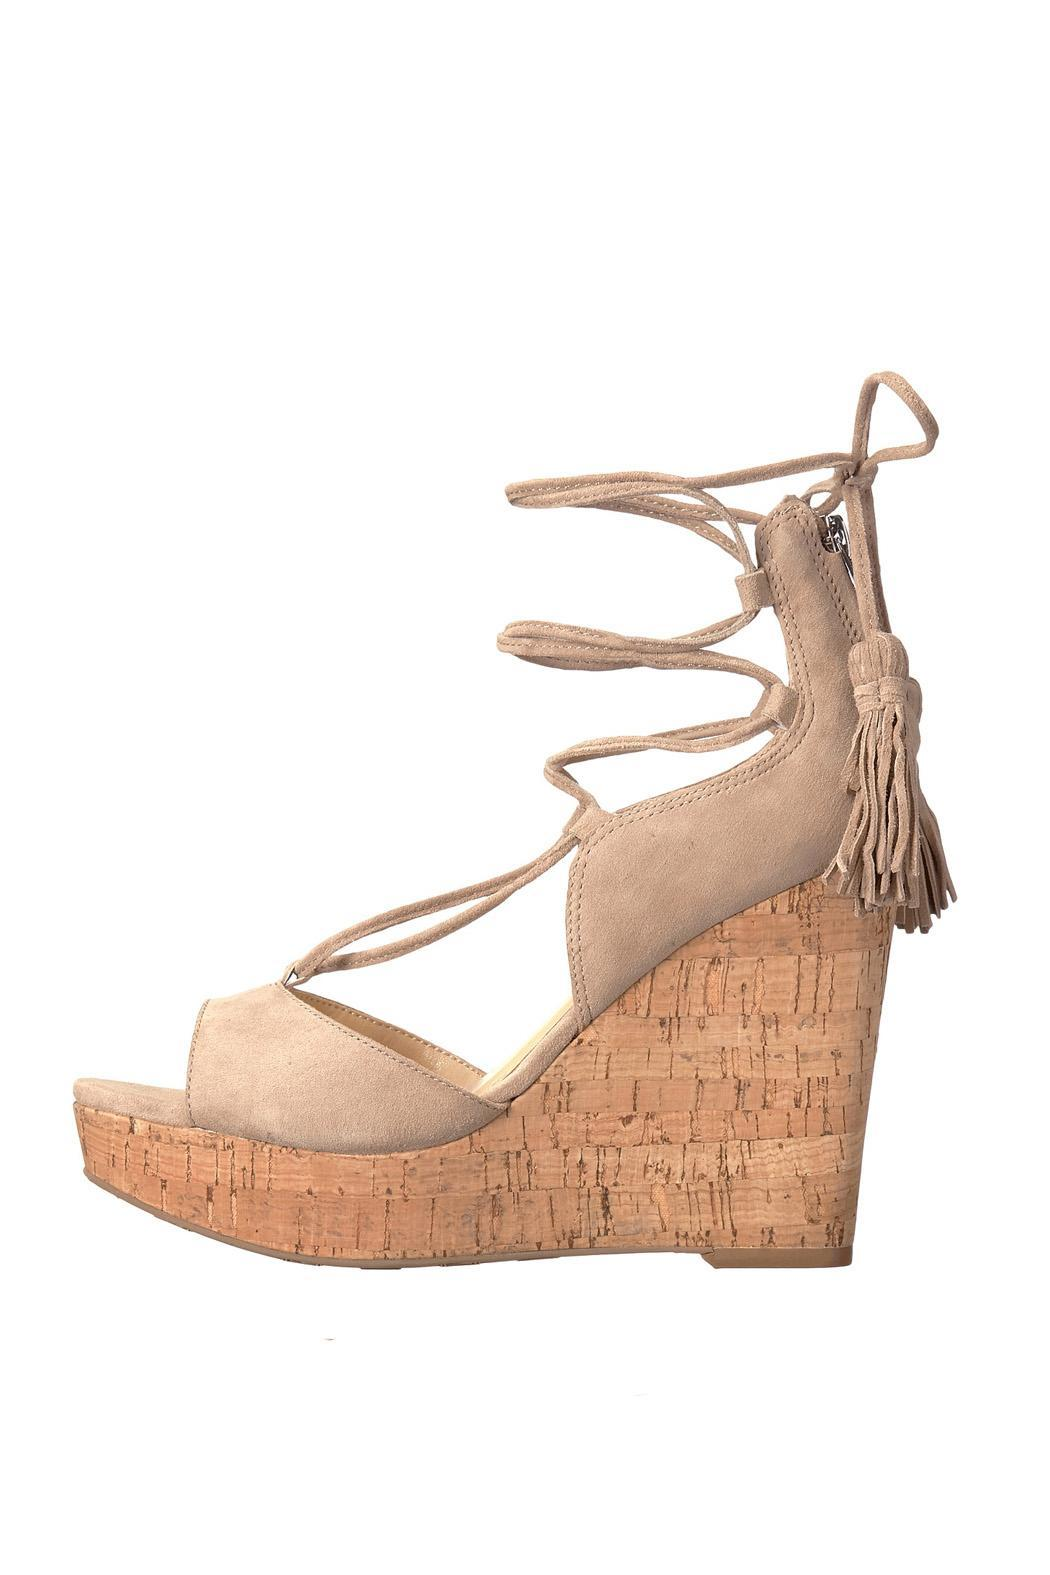 IVANKA TRUMP Tan Tassel Wedge - Main Image